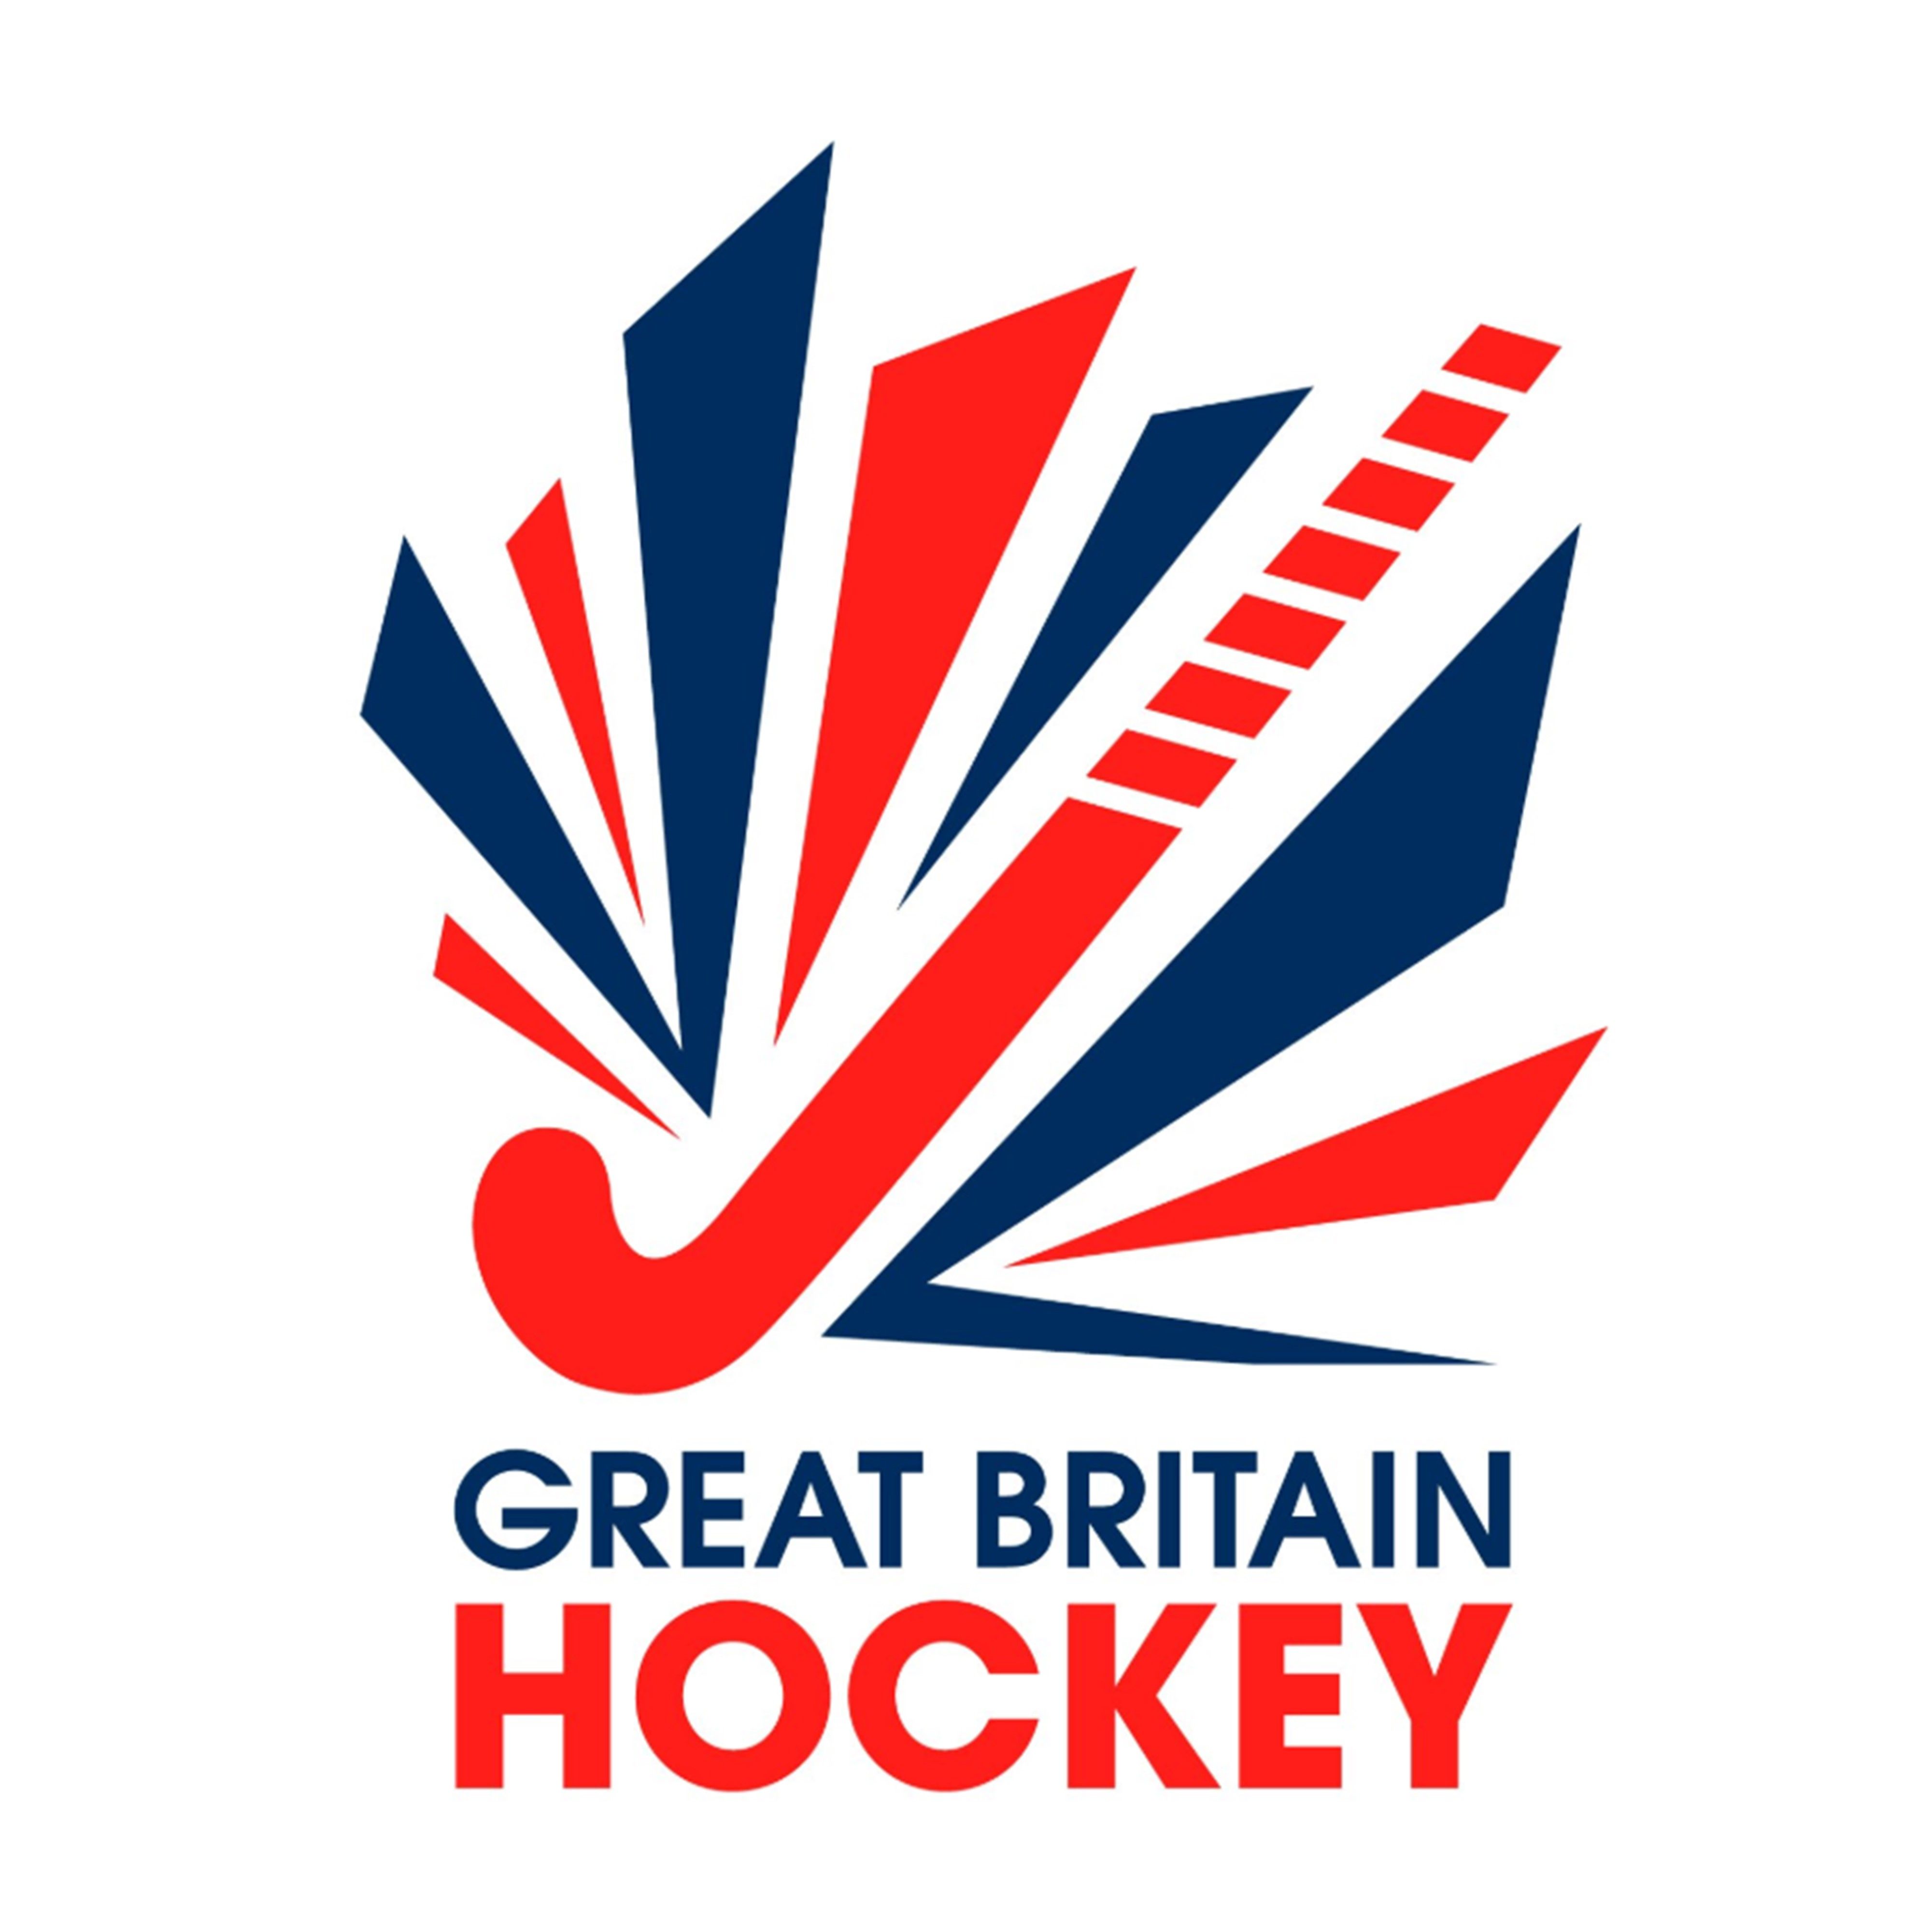 GB Hockey's Elite Development Programme aims to produce Olympic-level players.